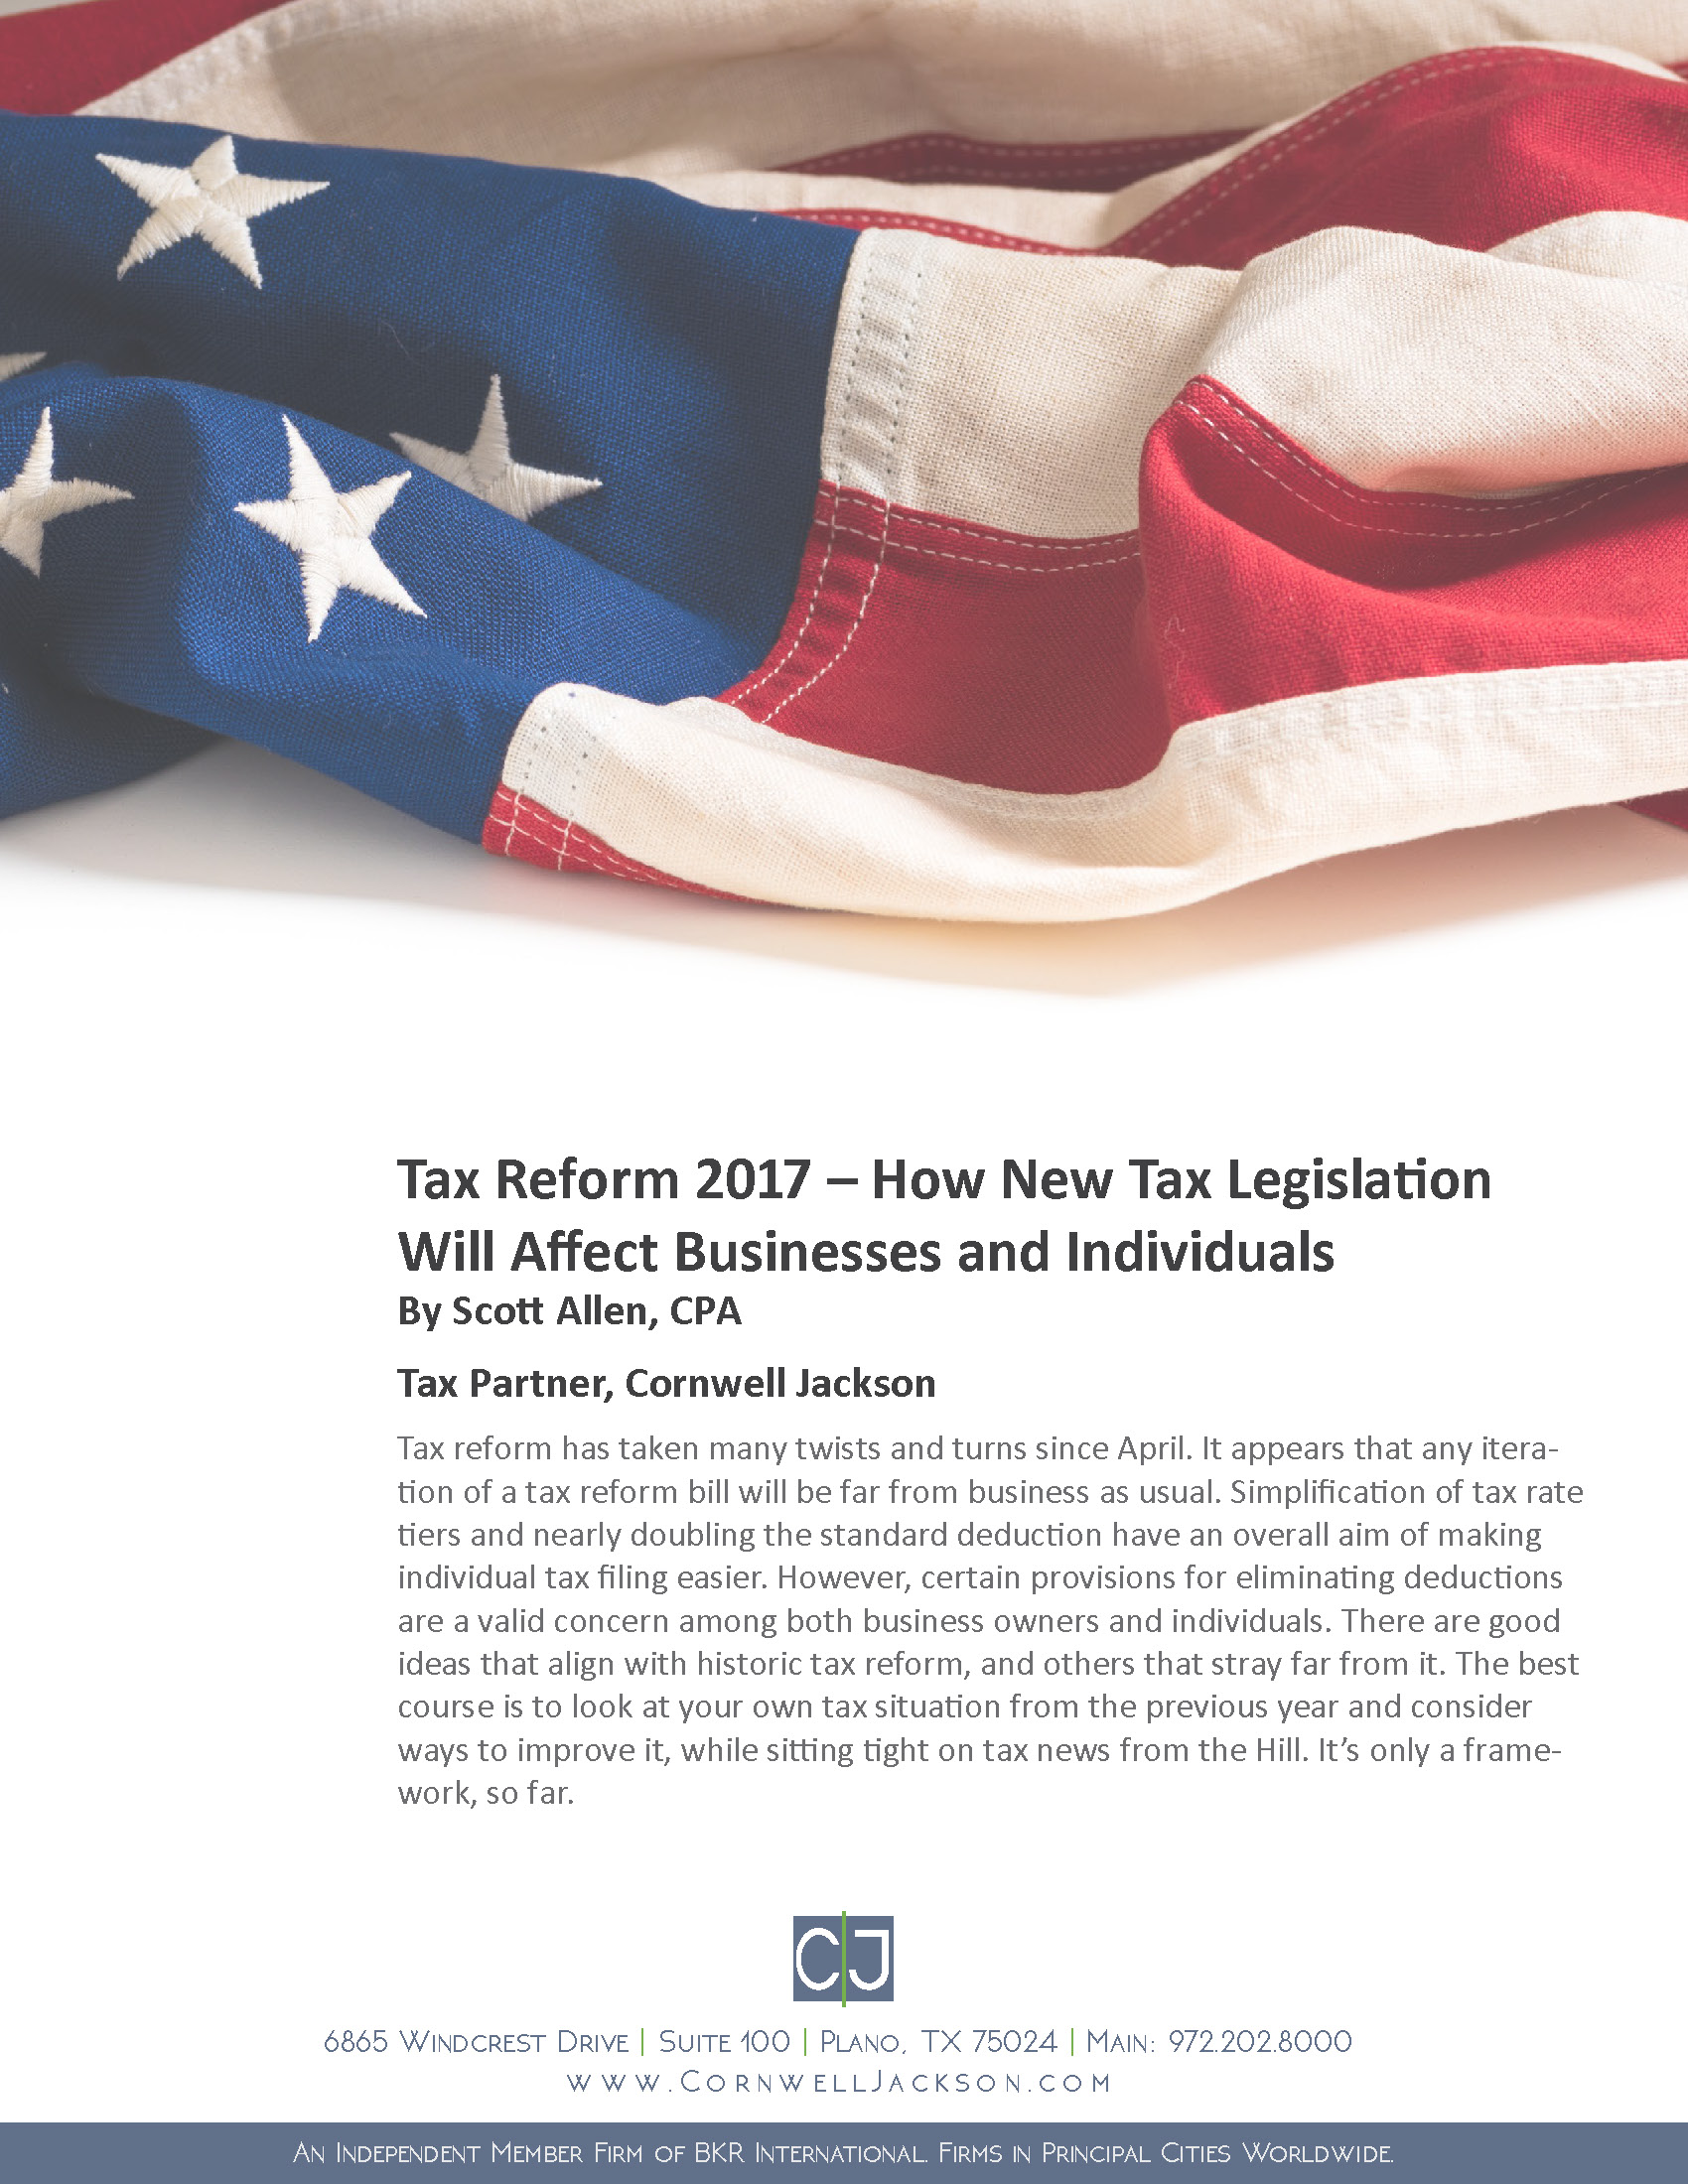 Cover - Tax Reform 2017.jpg